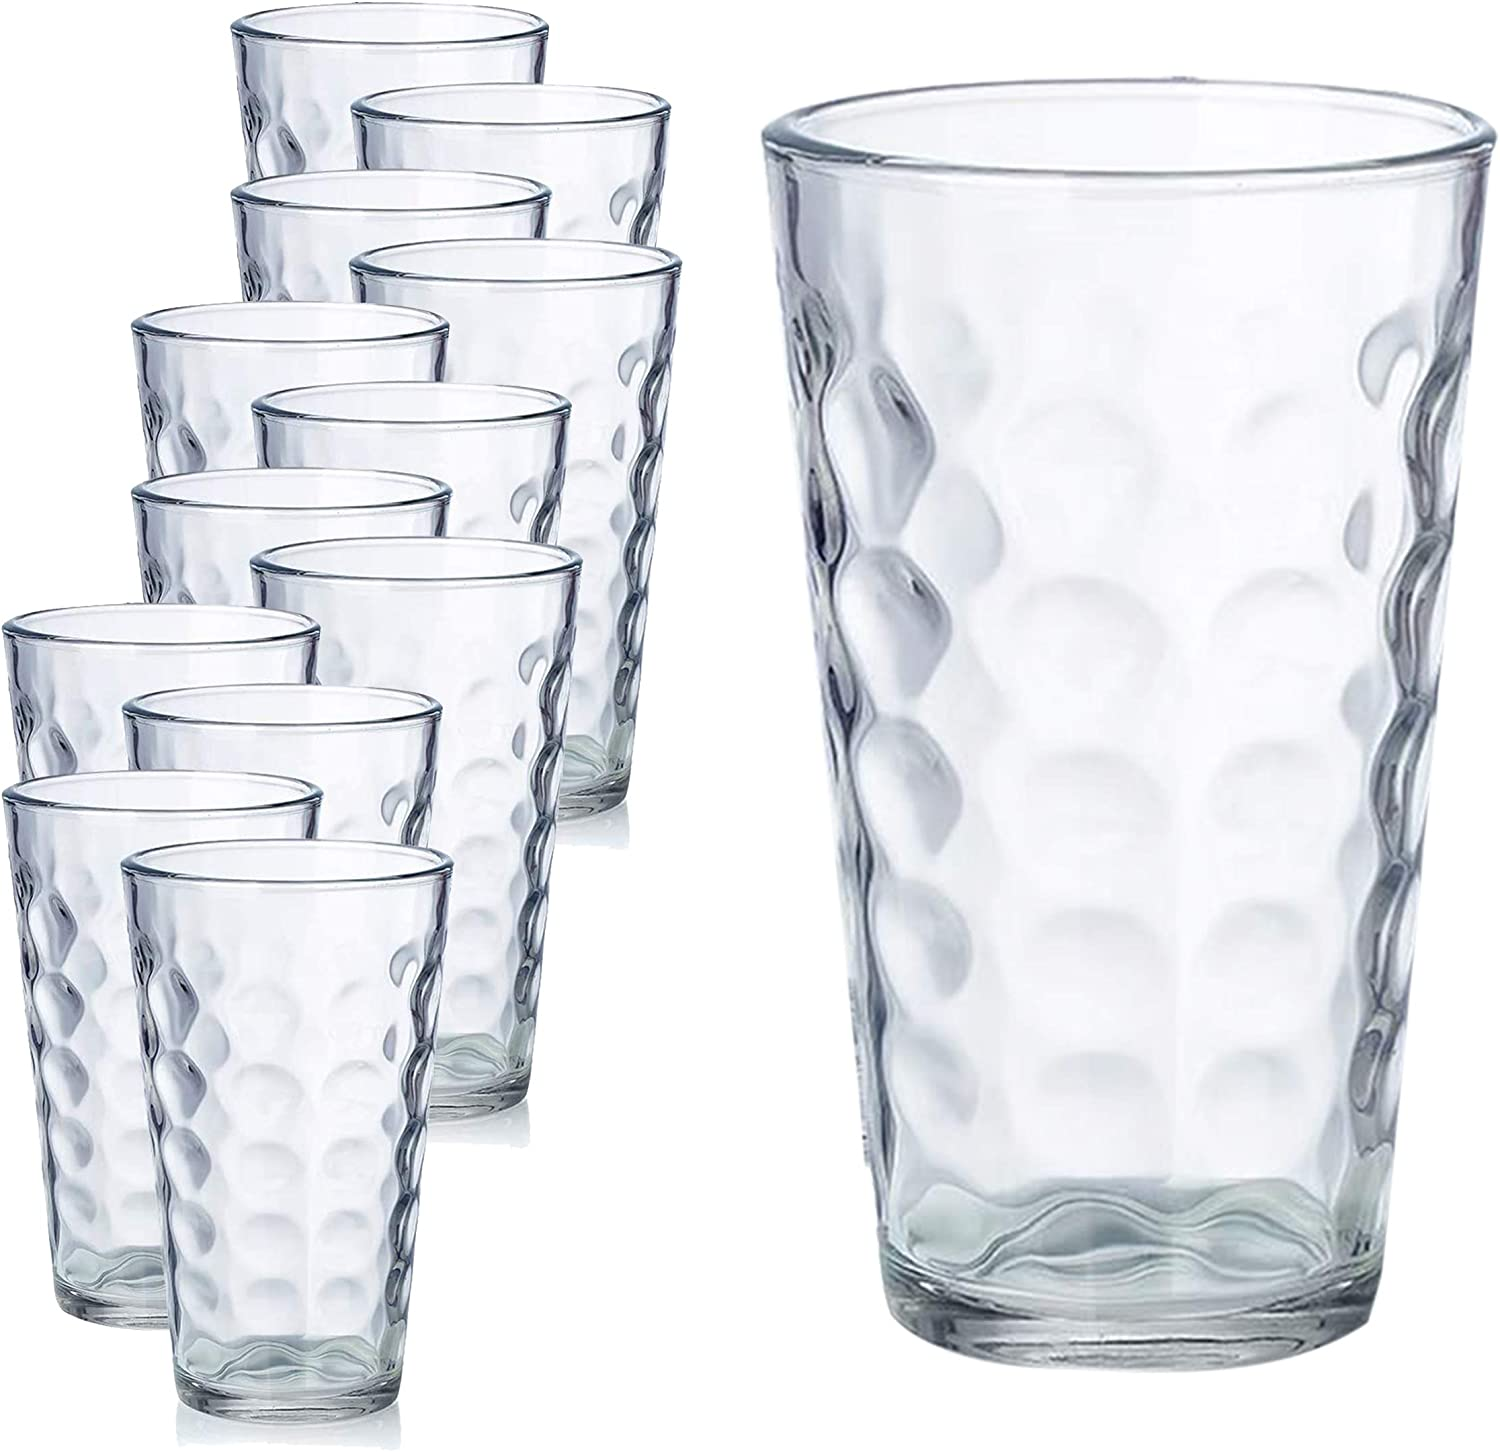 Chef's Star Clear Raindrop Drinking Water Glasses; Glassware Set with Heavy Base; Premium Durable Drinkware Ideal for All Occasions; 16 Ounces (12 Pack)